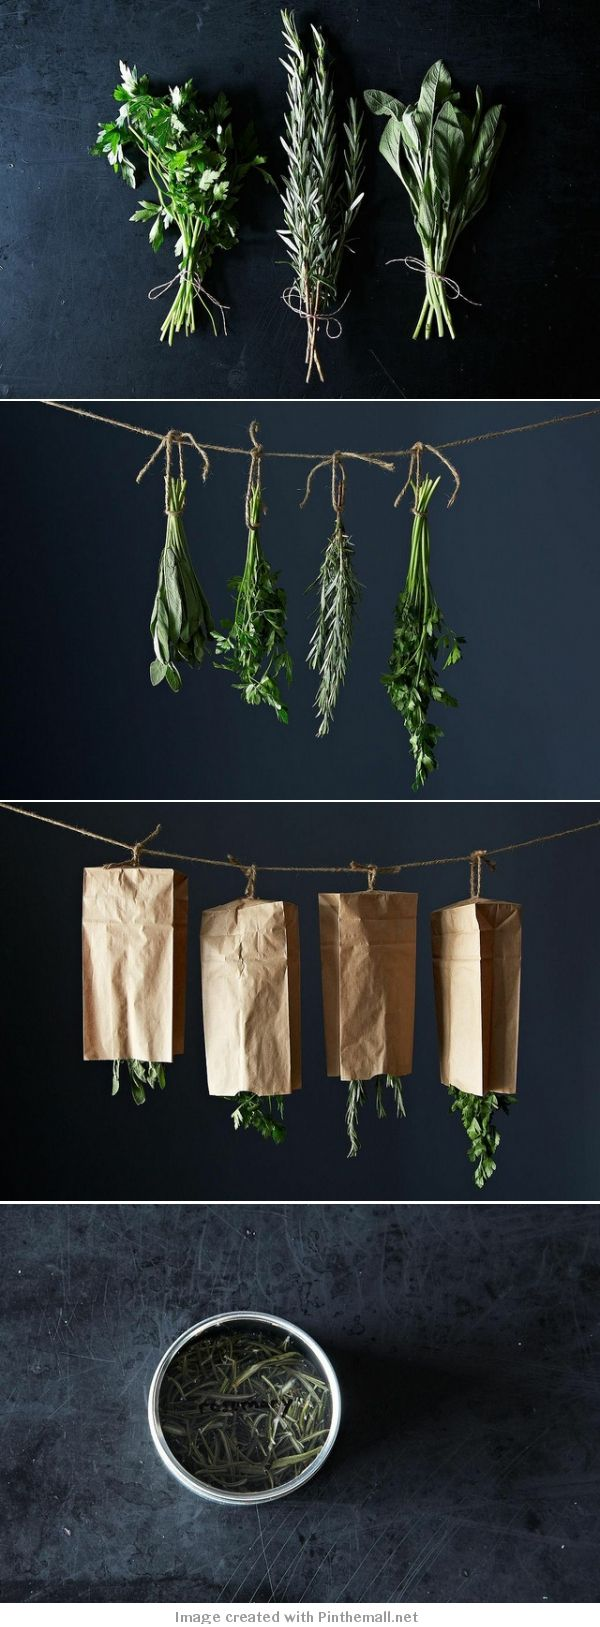 Grow fresh herbs with zero effort: http://www.clickandgrow.com/smart-herb-garden?utm_source=pinterest.com&utm_medium=smm&utm_campaign=pinstuffdriedherbsshg1501 | Click & Grow Herbs